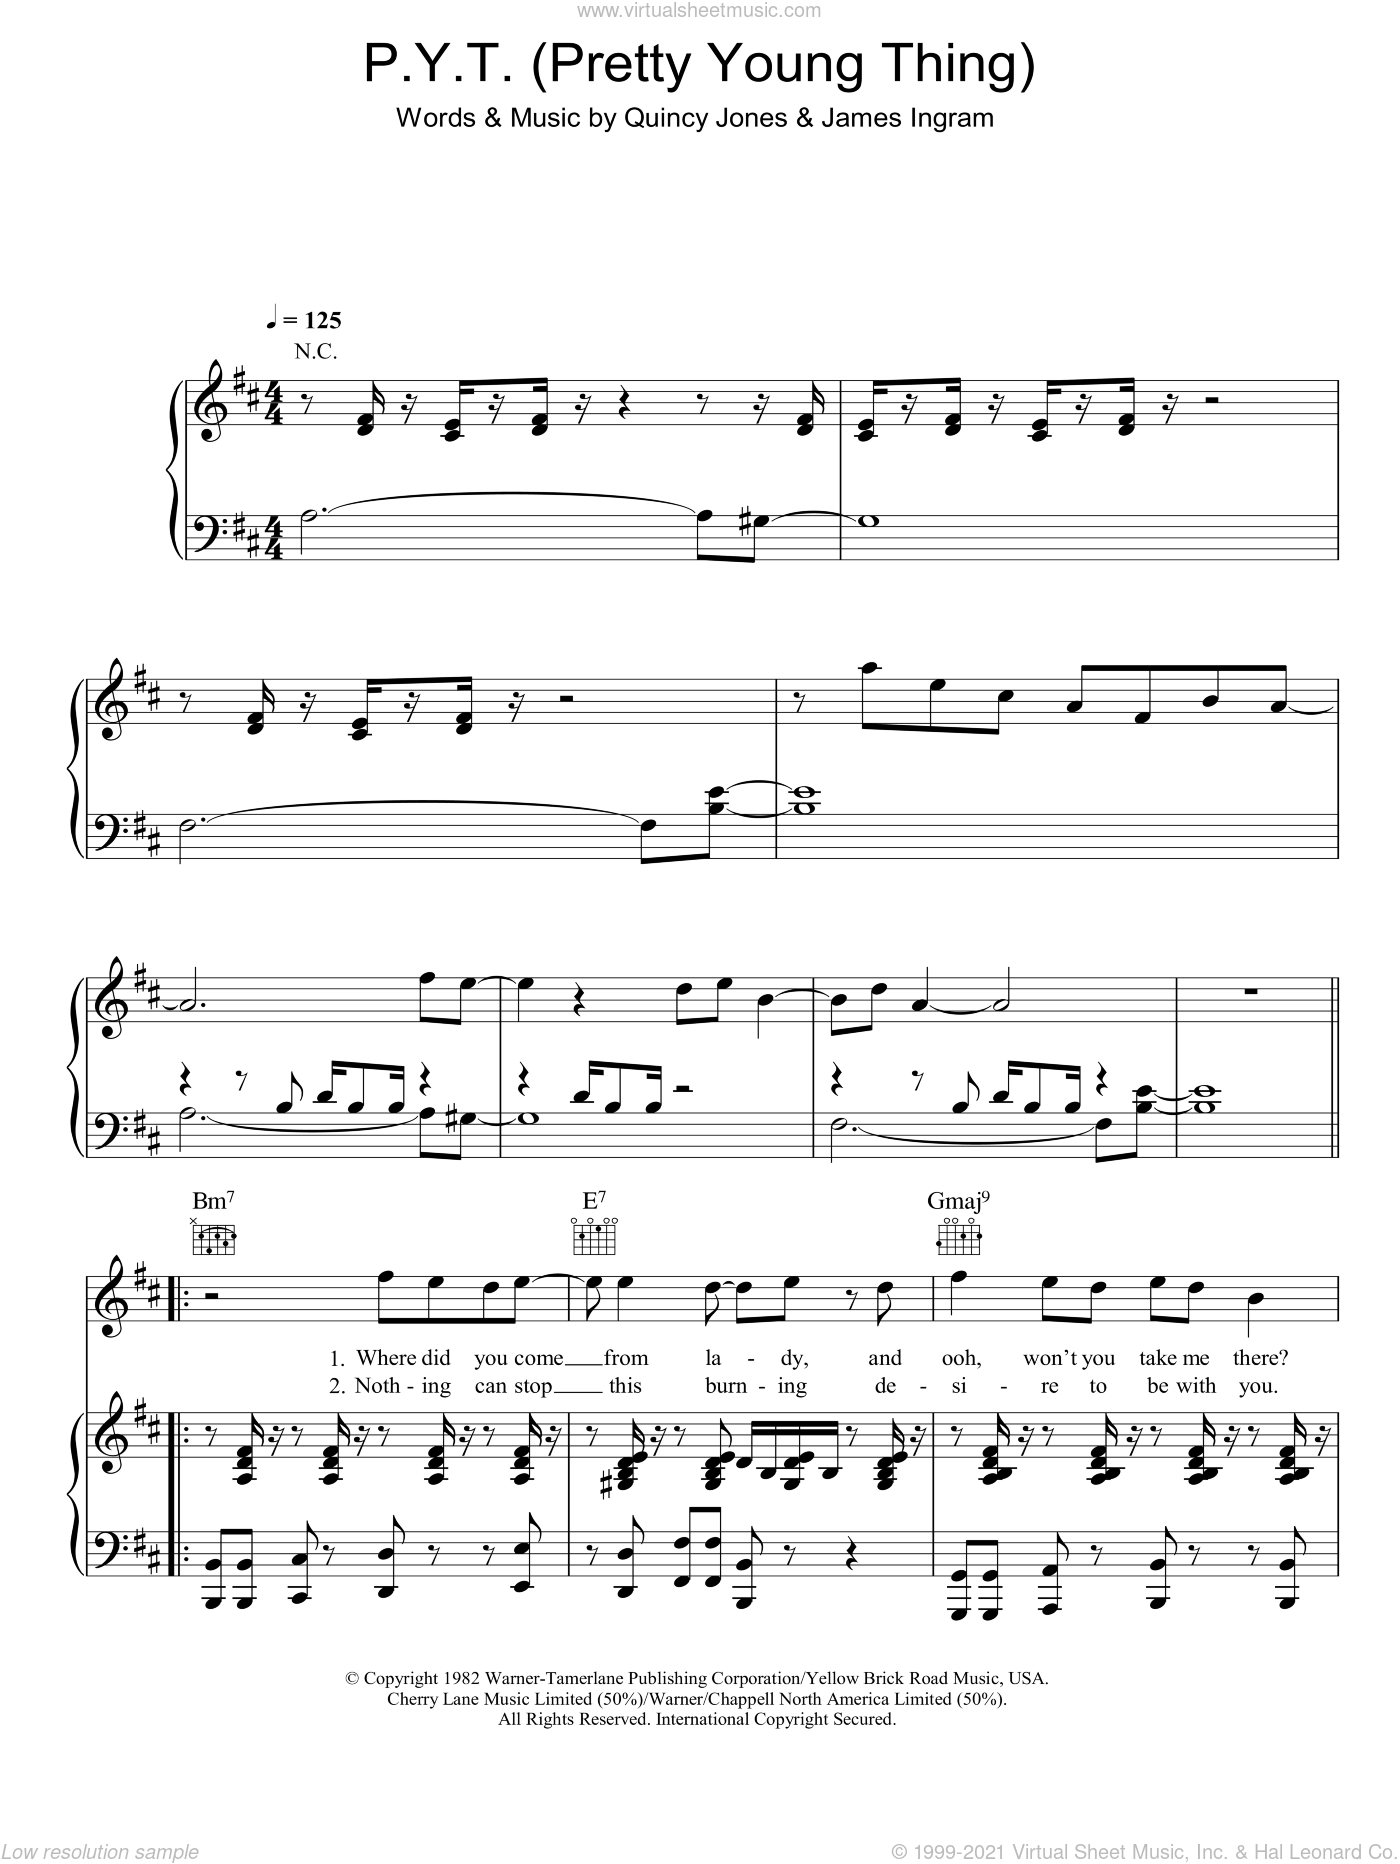 P.Y.T. (Pretty Young Thing) sheet music for voice, piano or guitar by James Ingram